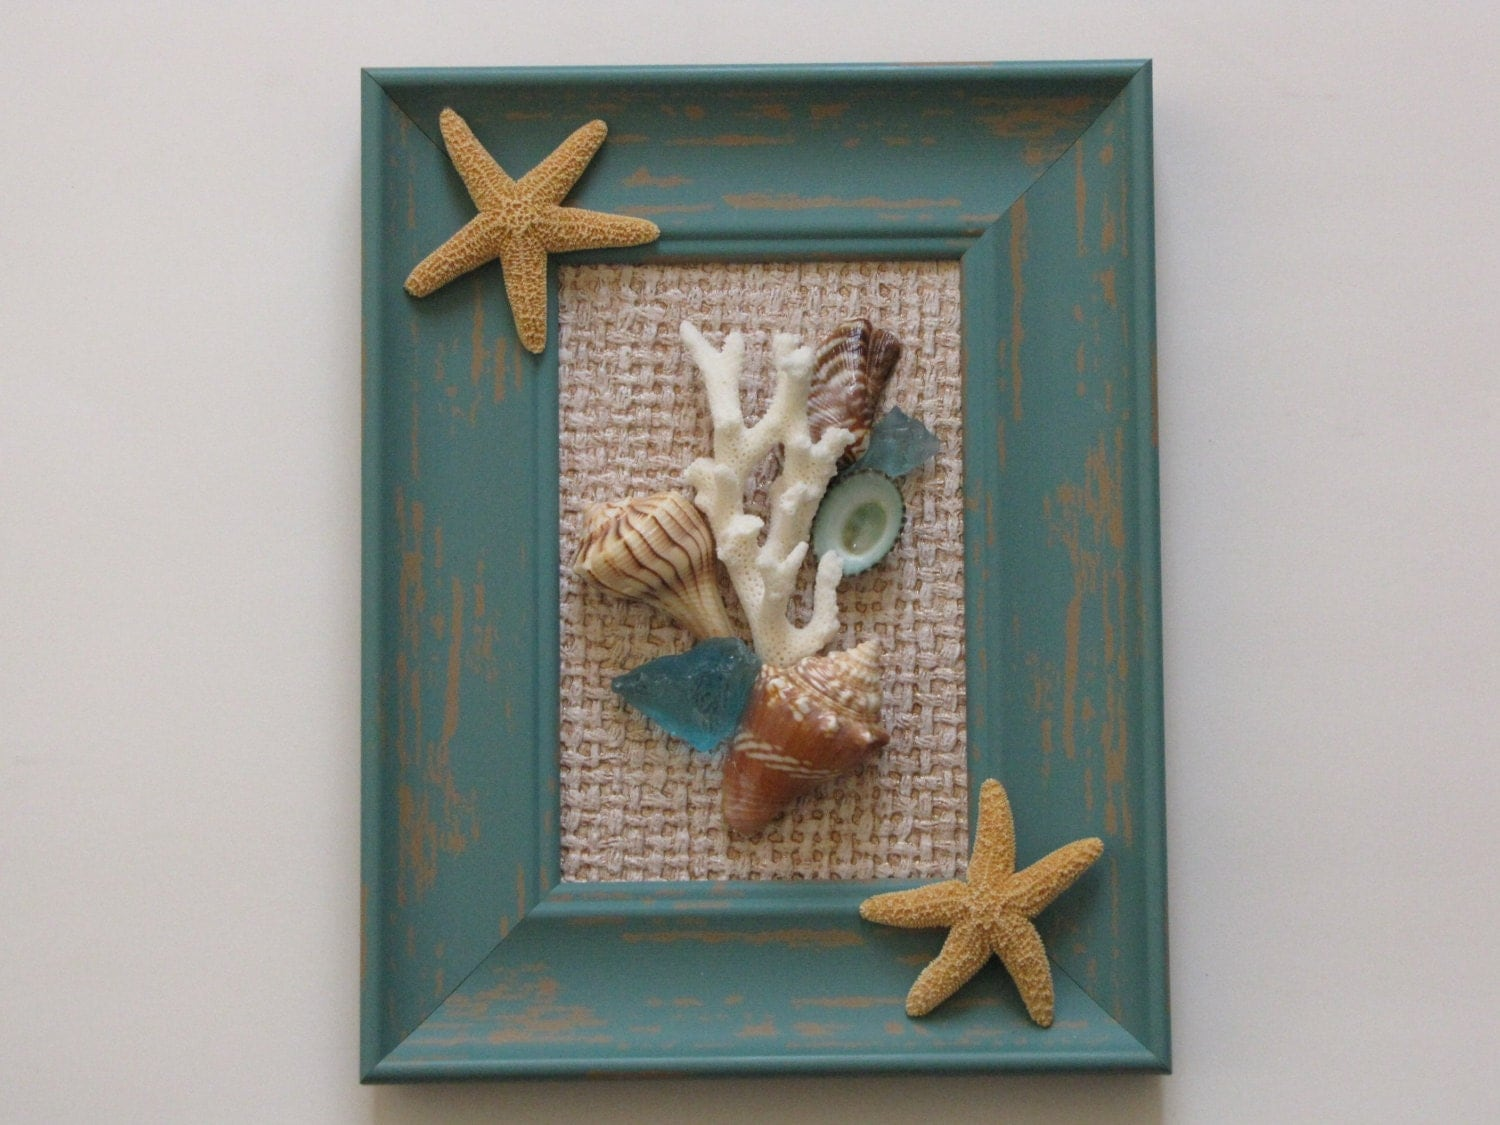 Coastal Wall Decor: Seashell Wall Decor Framed Seashell Wall Art Beach Decor